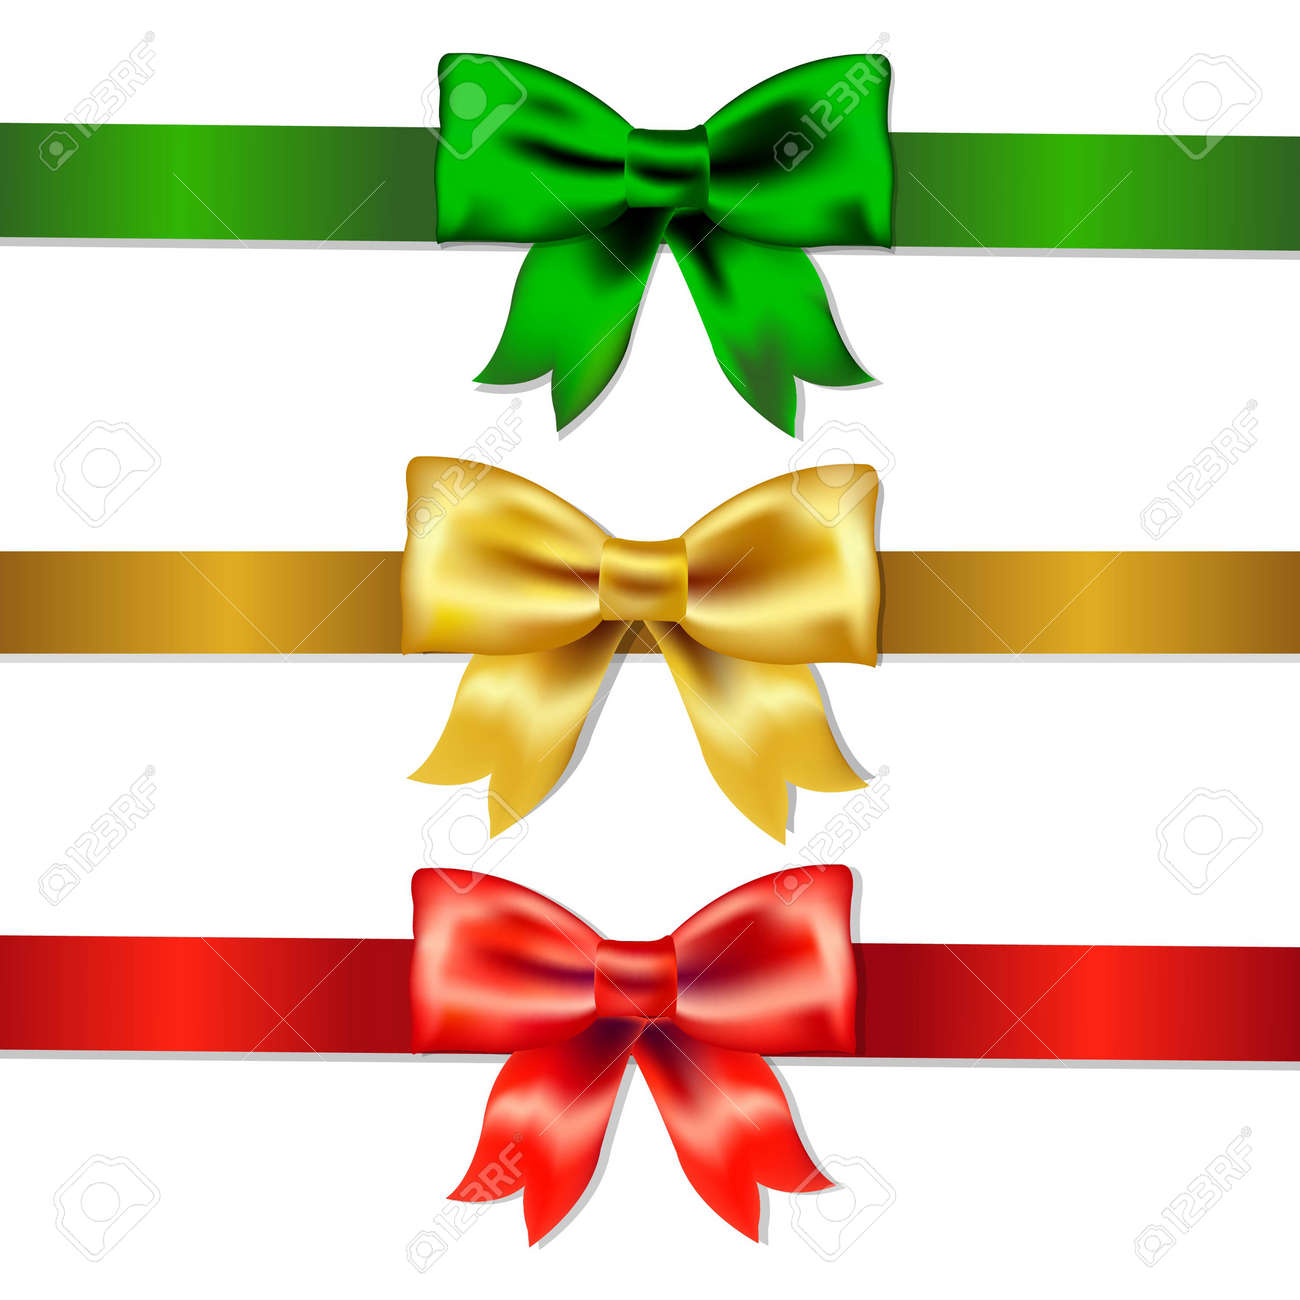 Set Of Color Bows, With Gradient Mesh, Vector Illustration - 24381119